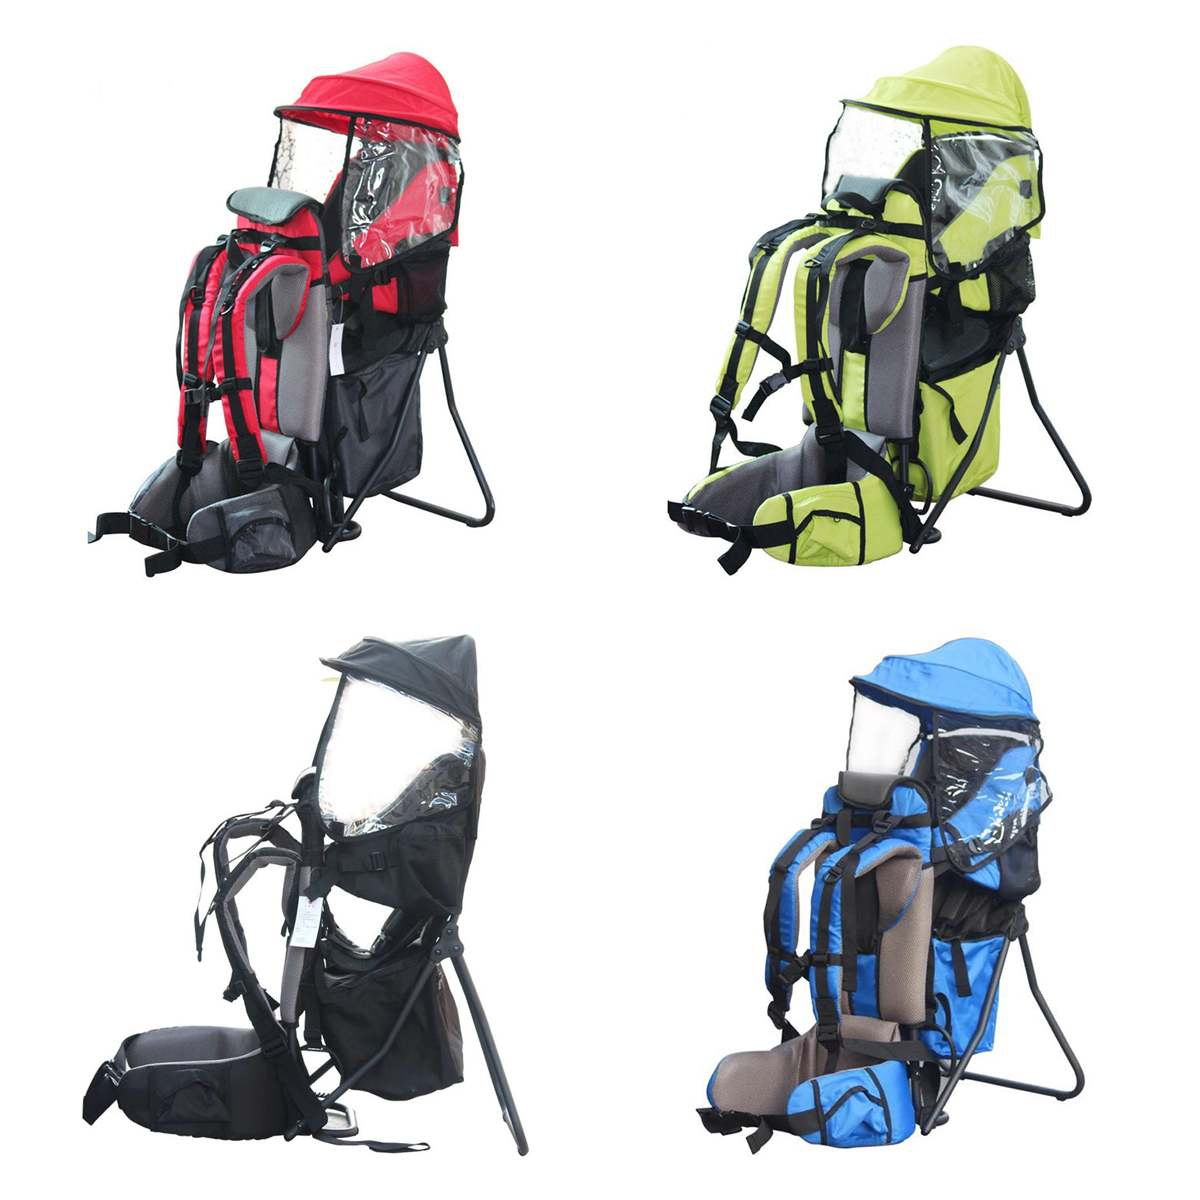 Load 30kg Adjustable Outdoor Baby Toddler Backpack Camping Climbing Bag Waterproof Mountaineering Hiking Child Kid Carrier